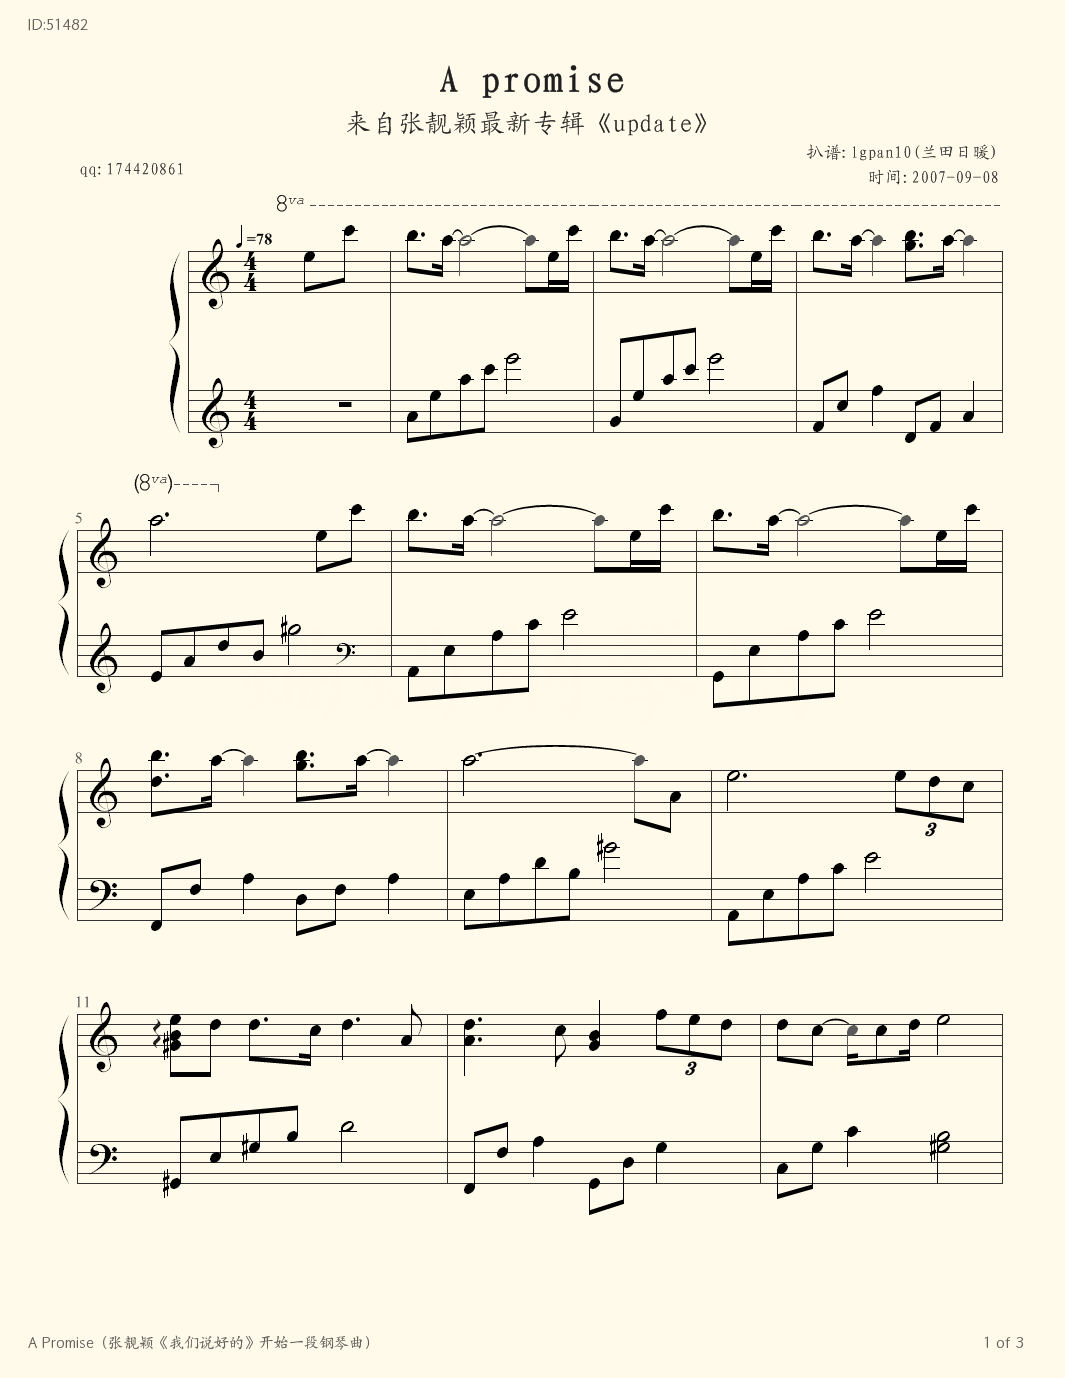 A Promise  - Jane zhang - first page